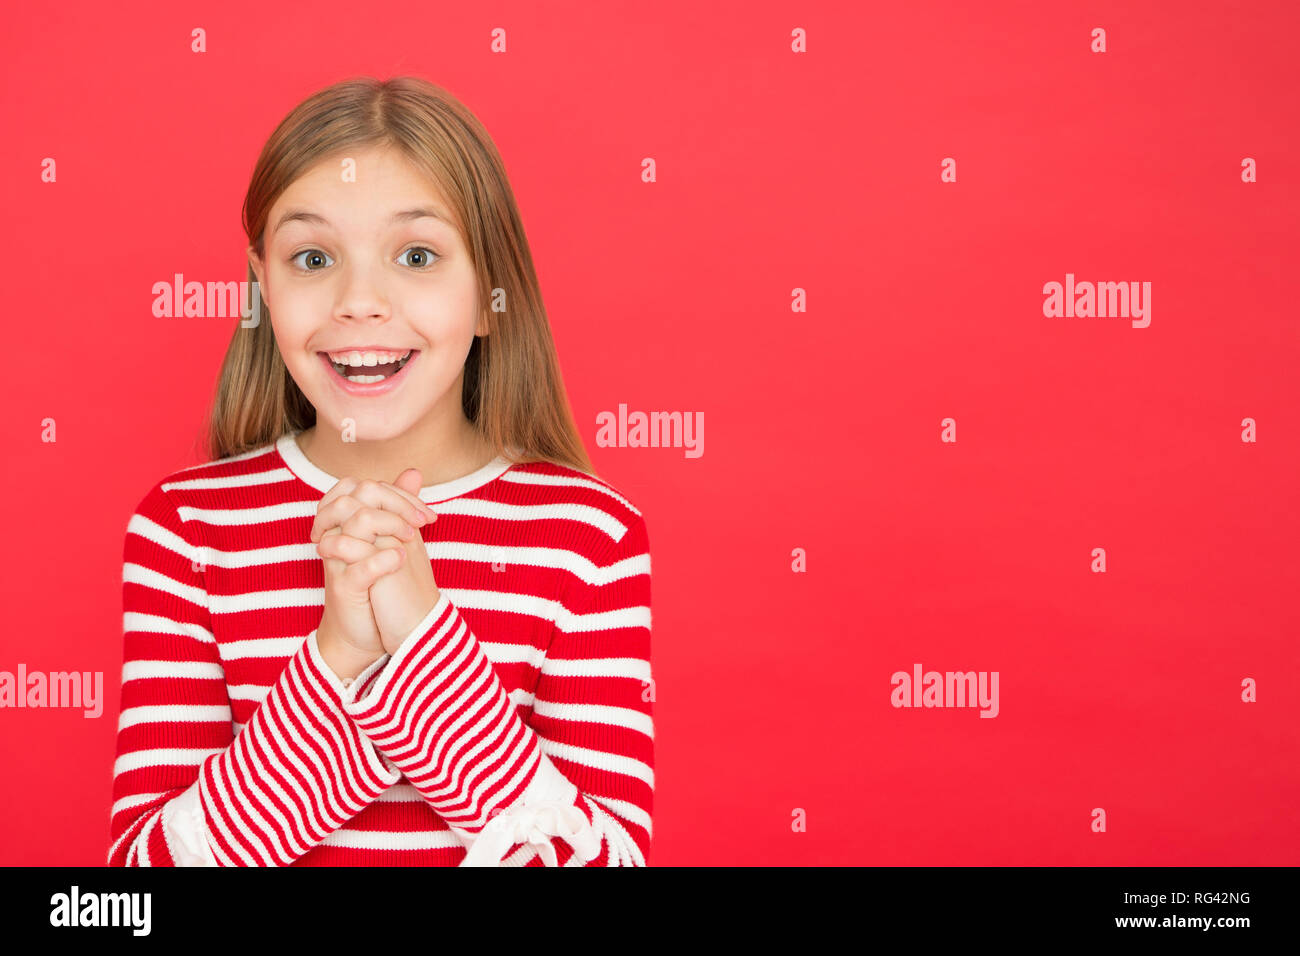 Believe in miracle. Child girl dreaming her wish come true. Miracle happens. Little girl smiling full of hope. My secret wish. Make a wish. Hope for the best. Girl hopeful excited face making wish. - Stock Image